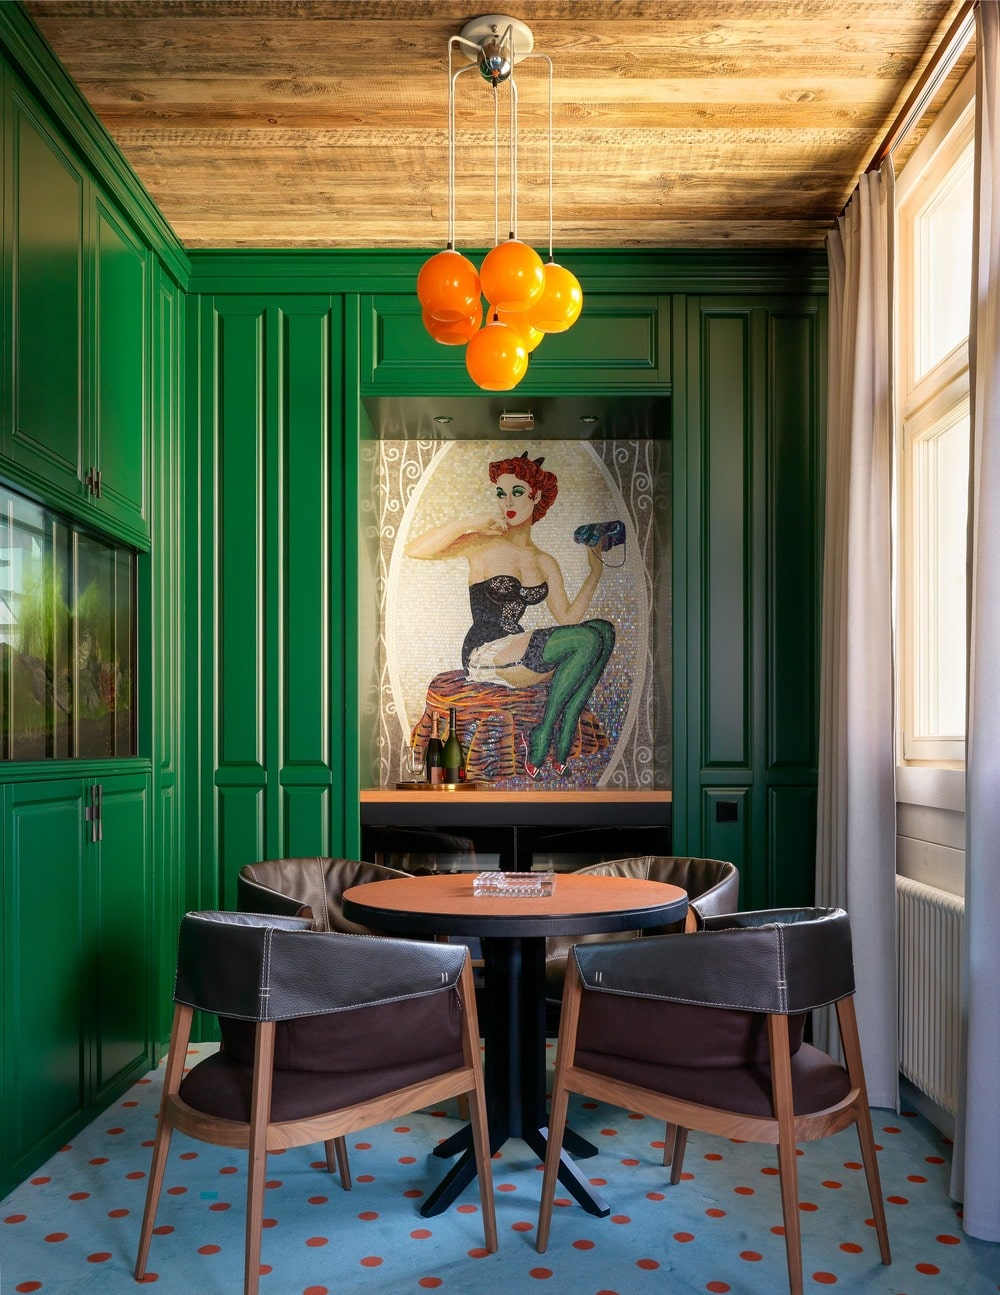 The game room has a small round table paired with comfortable wooden armchairs that is erfect for board games and card games. These are then adorned by the surrounding green walls contrasted by the colorful painting on the far wall.